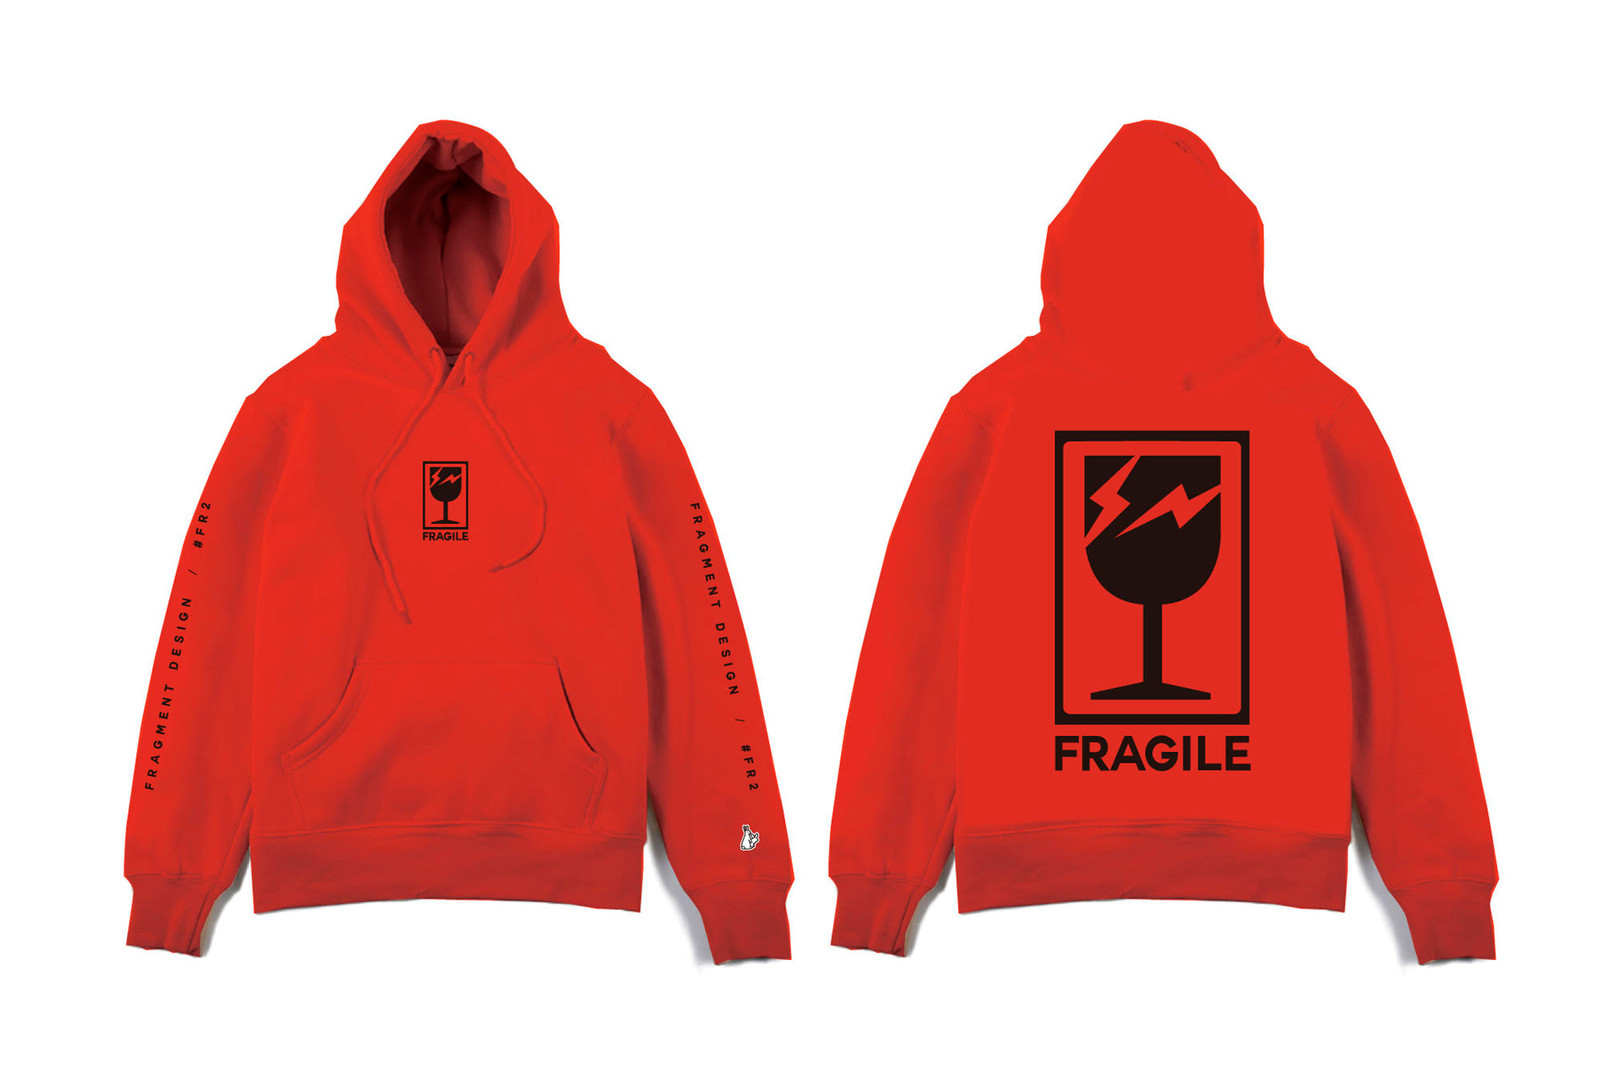 Supreme Fall/Winter 2018 Drop 19 Release Info weekly drops fall winter 2018 drop 19 supreme palace online ceramics fragment design fxxking rabbits bape neighborhood golf wang noah keith haring vetements